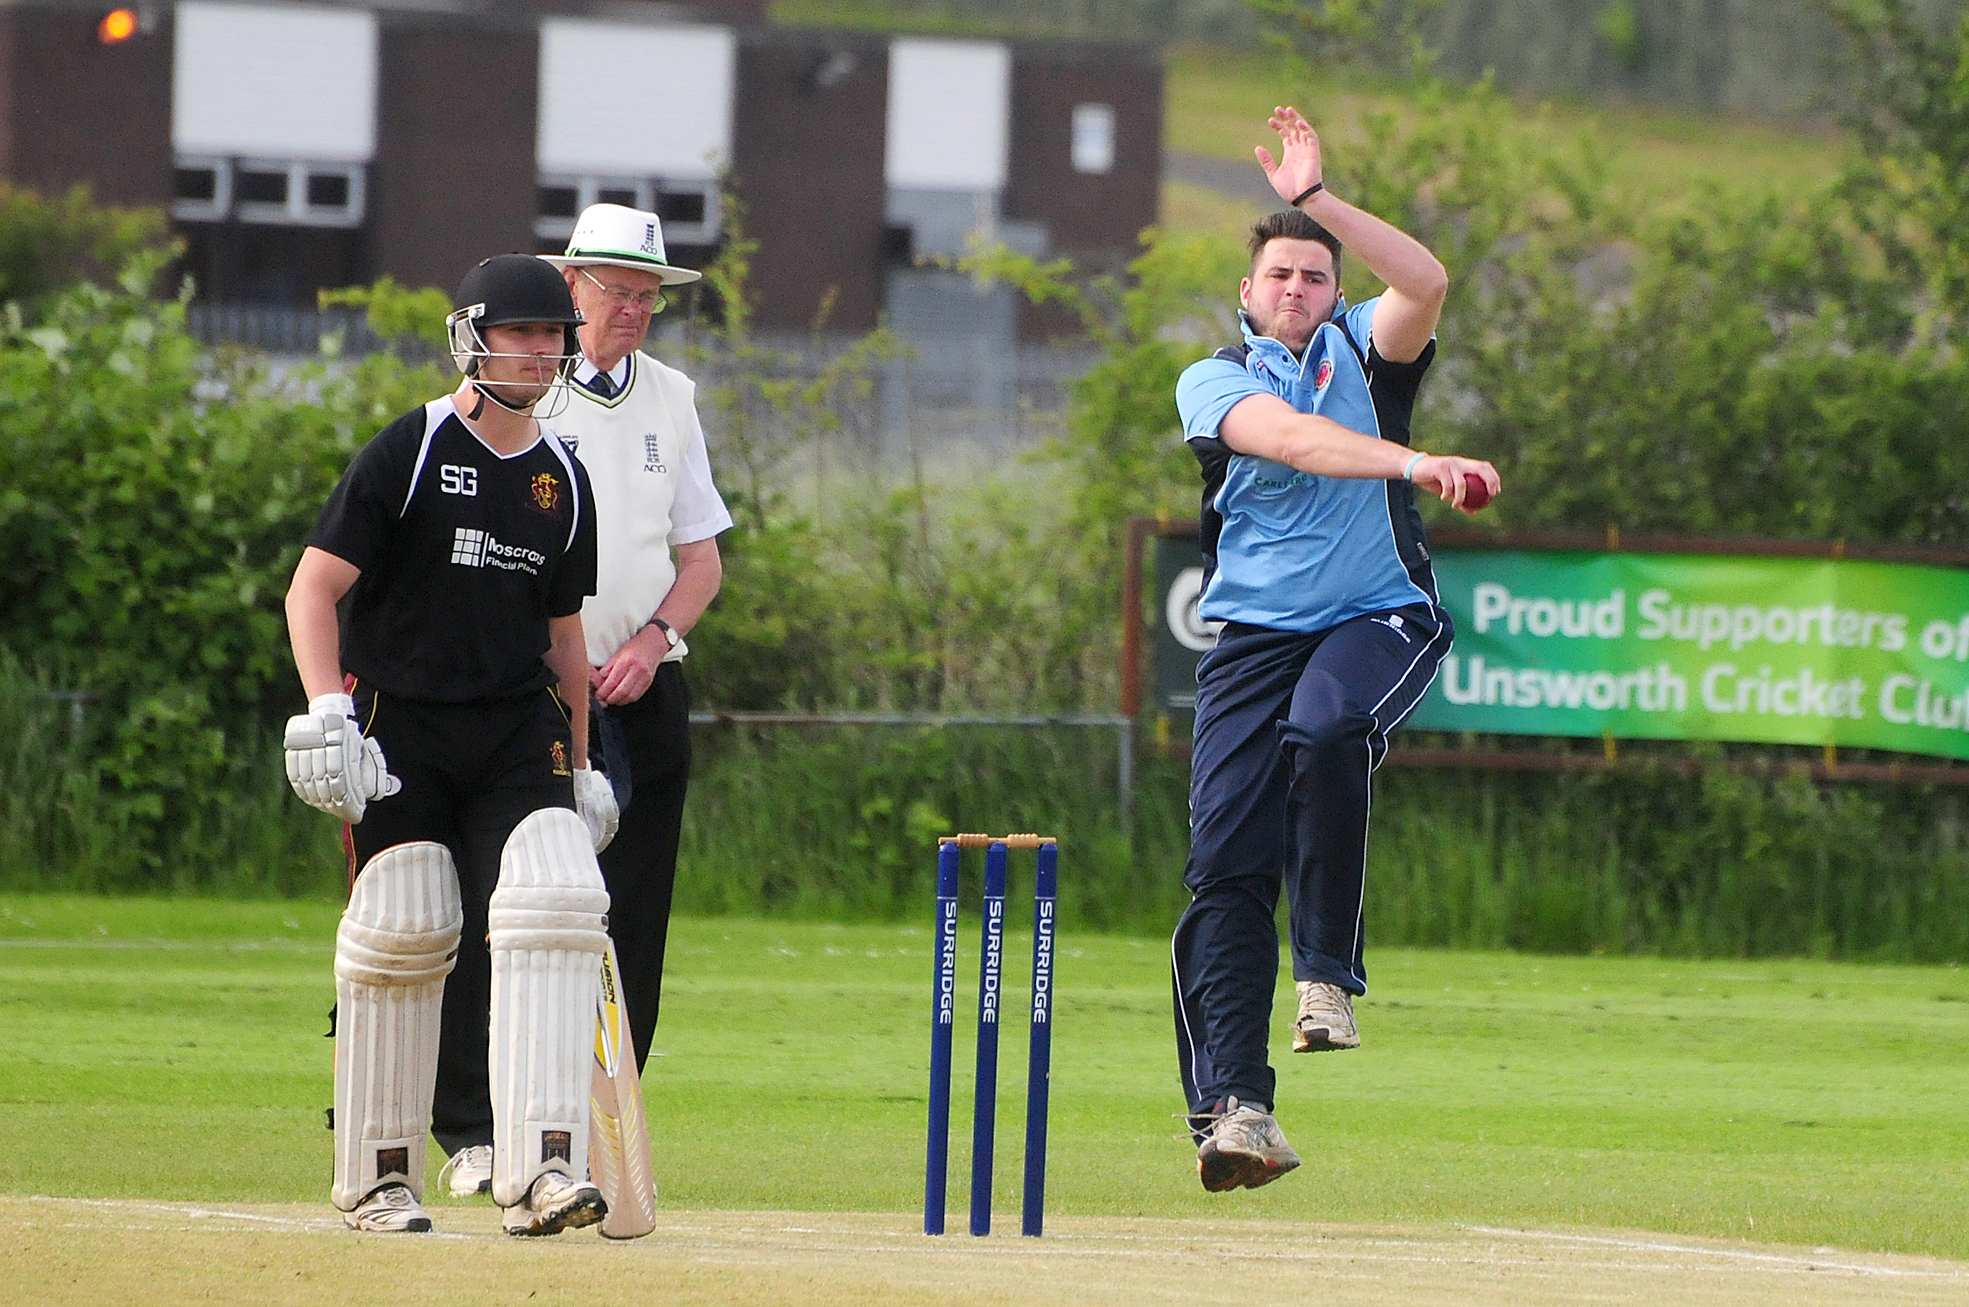 IN ACTION Unsworth bowler Jack O'Brien